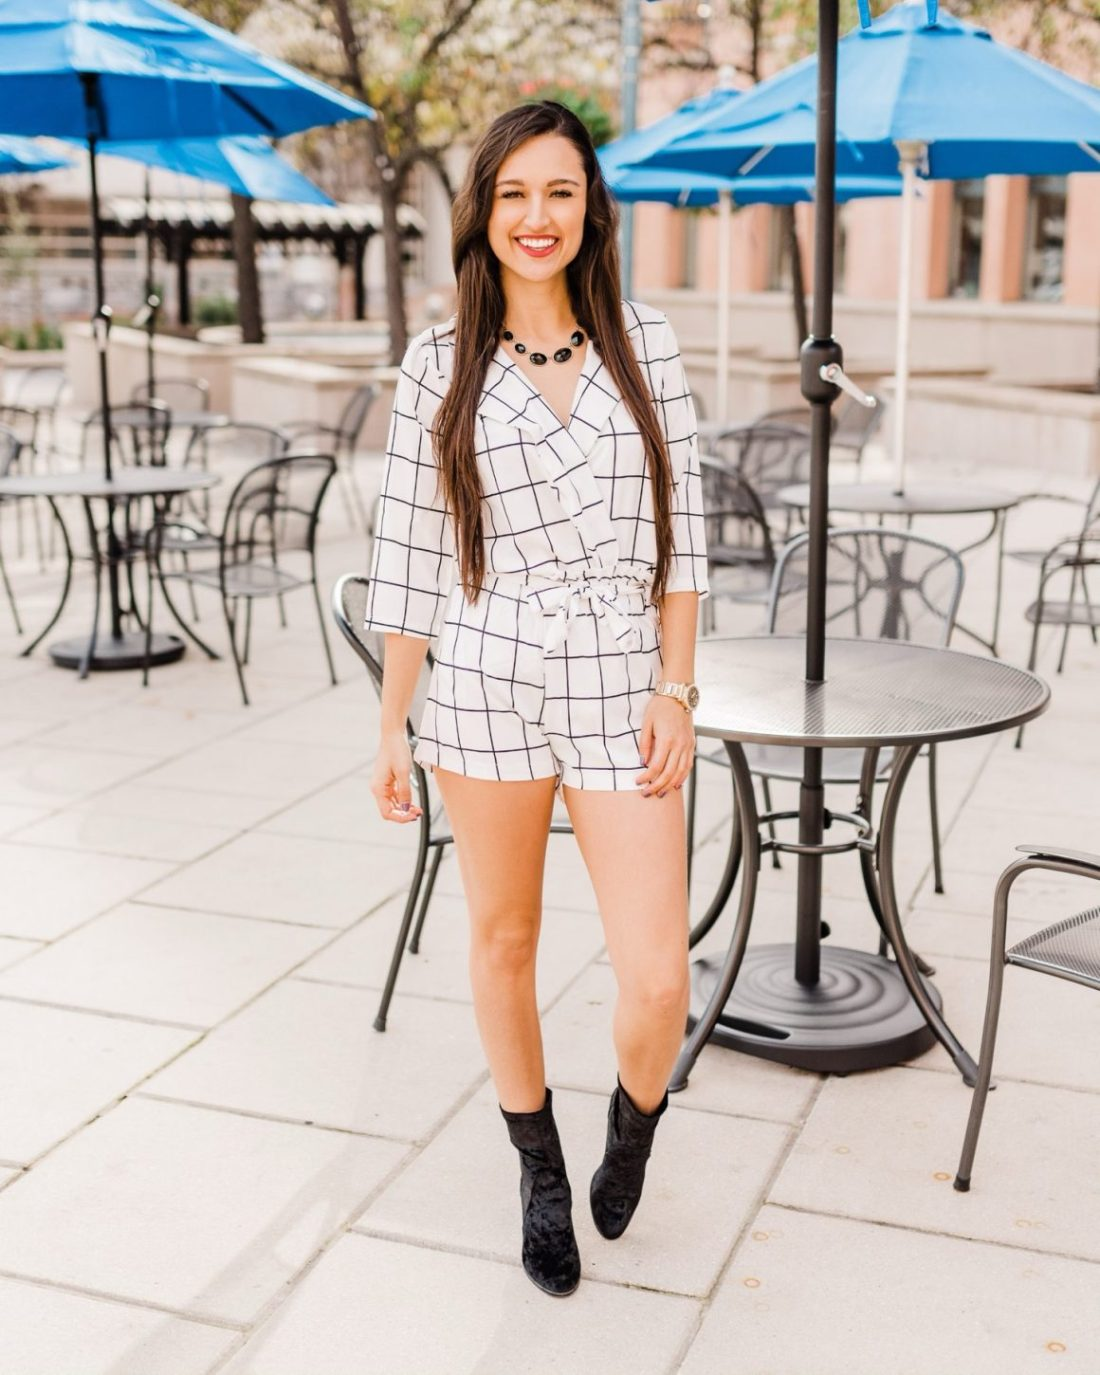 Shein Two-piece Sets, Skirts, Shorts and More Under $20!